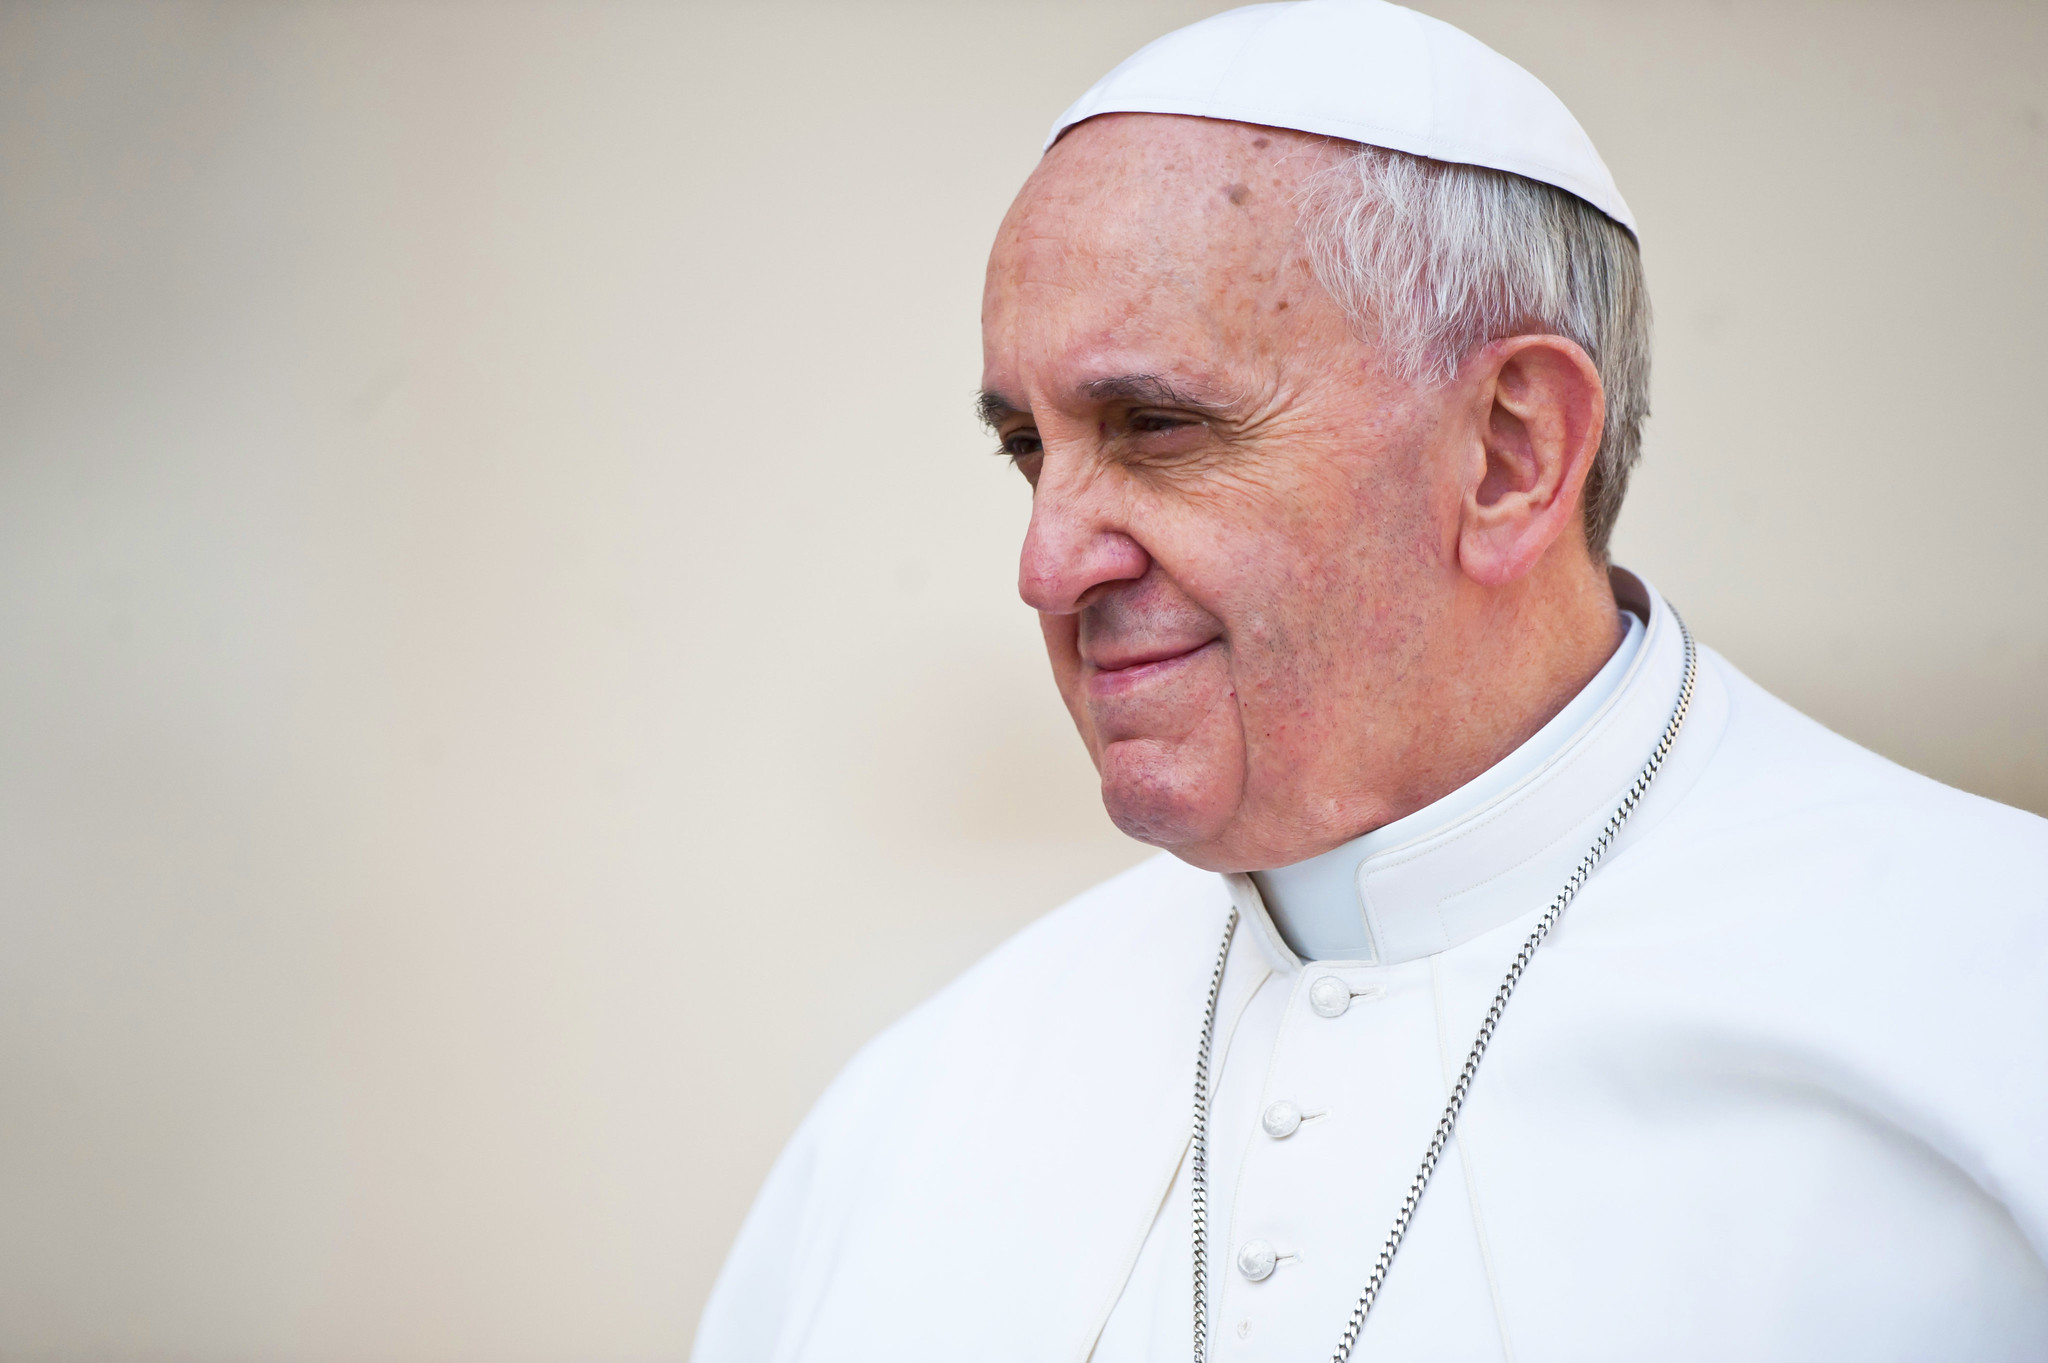 We Have To Begin Anew: Socialist Reflections On Pope Francis' Encyclicals